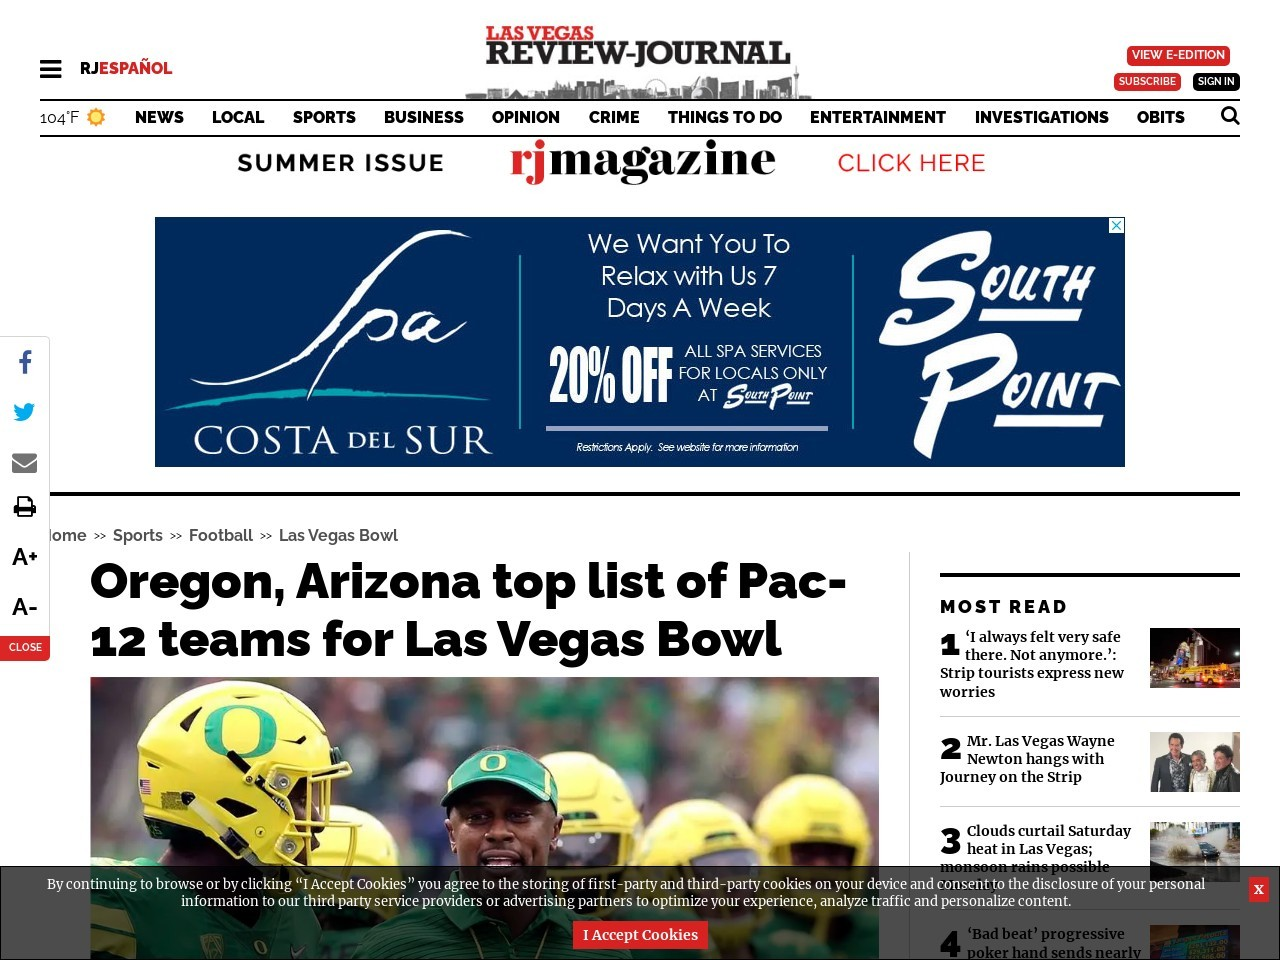 Oregon, Arizona top list of Pac-12 teams for Las Vegas Bowl